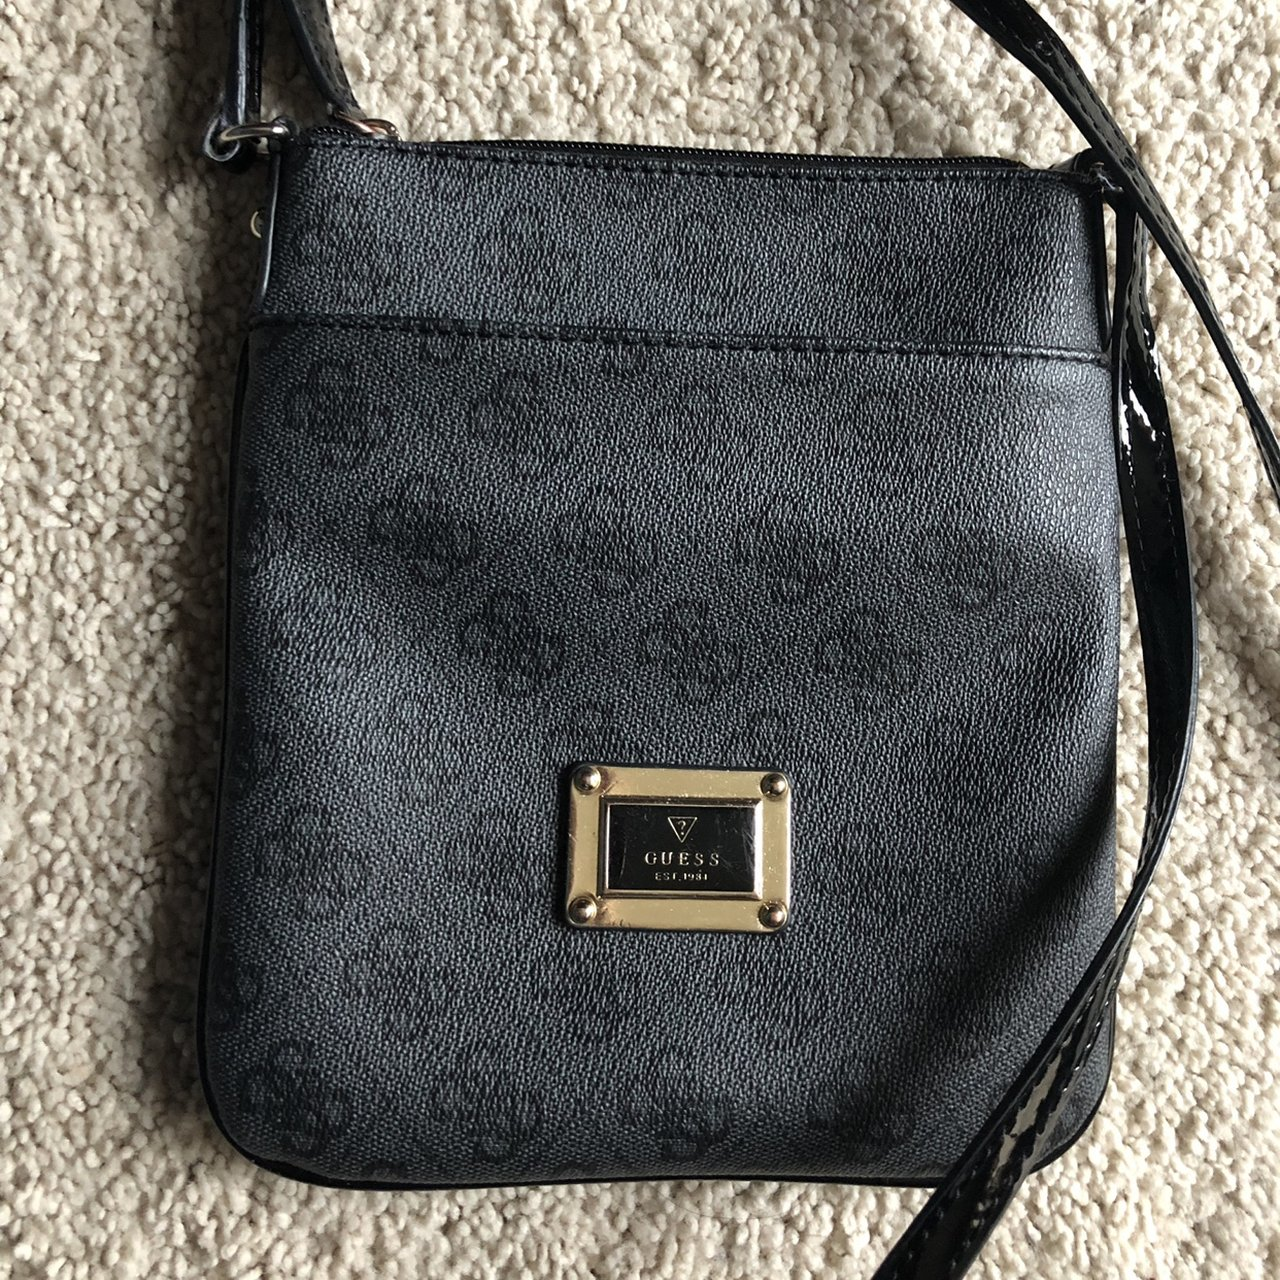 13755d3edf  priyascloset. 20 days ago. United States. guess side bag. rly good  condition ...